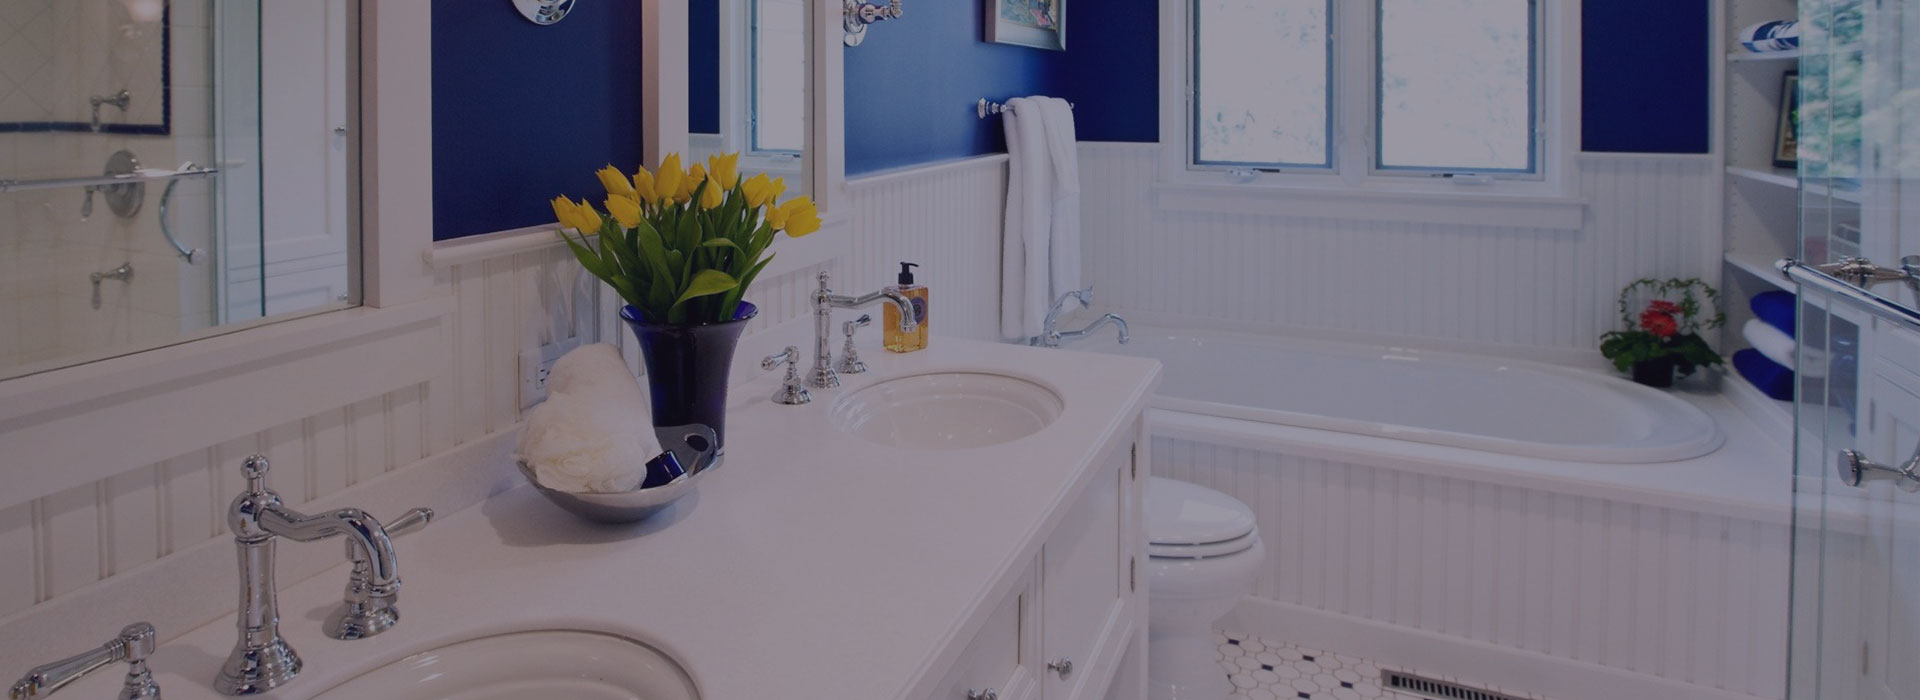 downers grove bath remodel